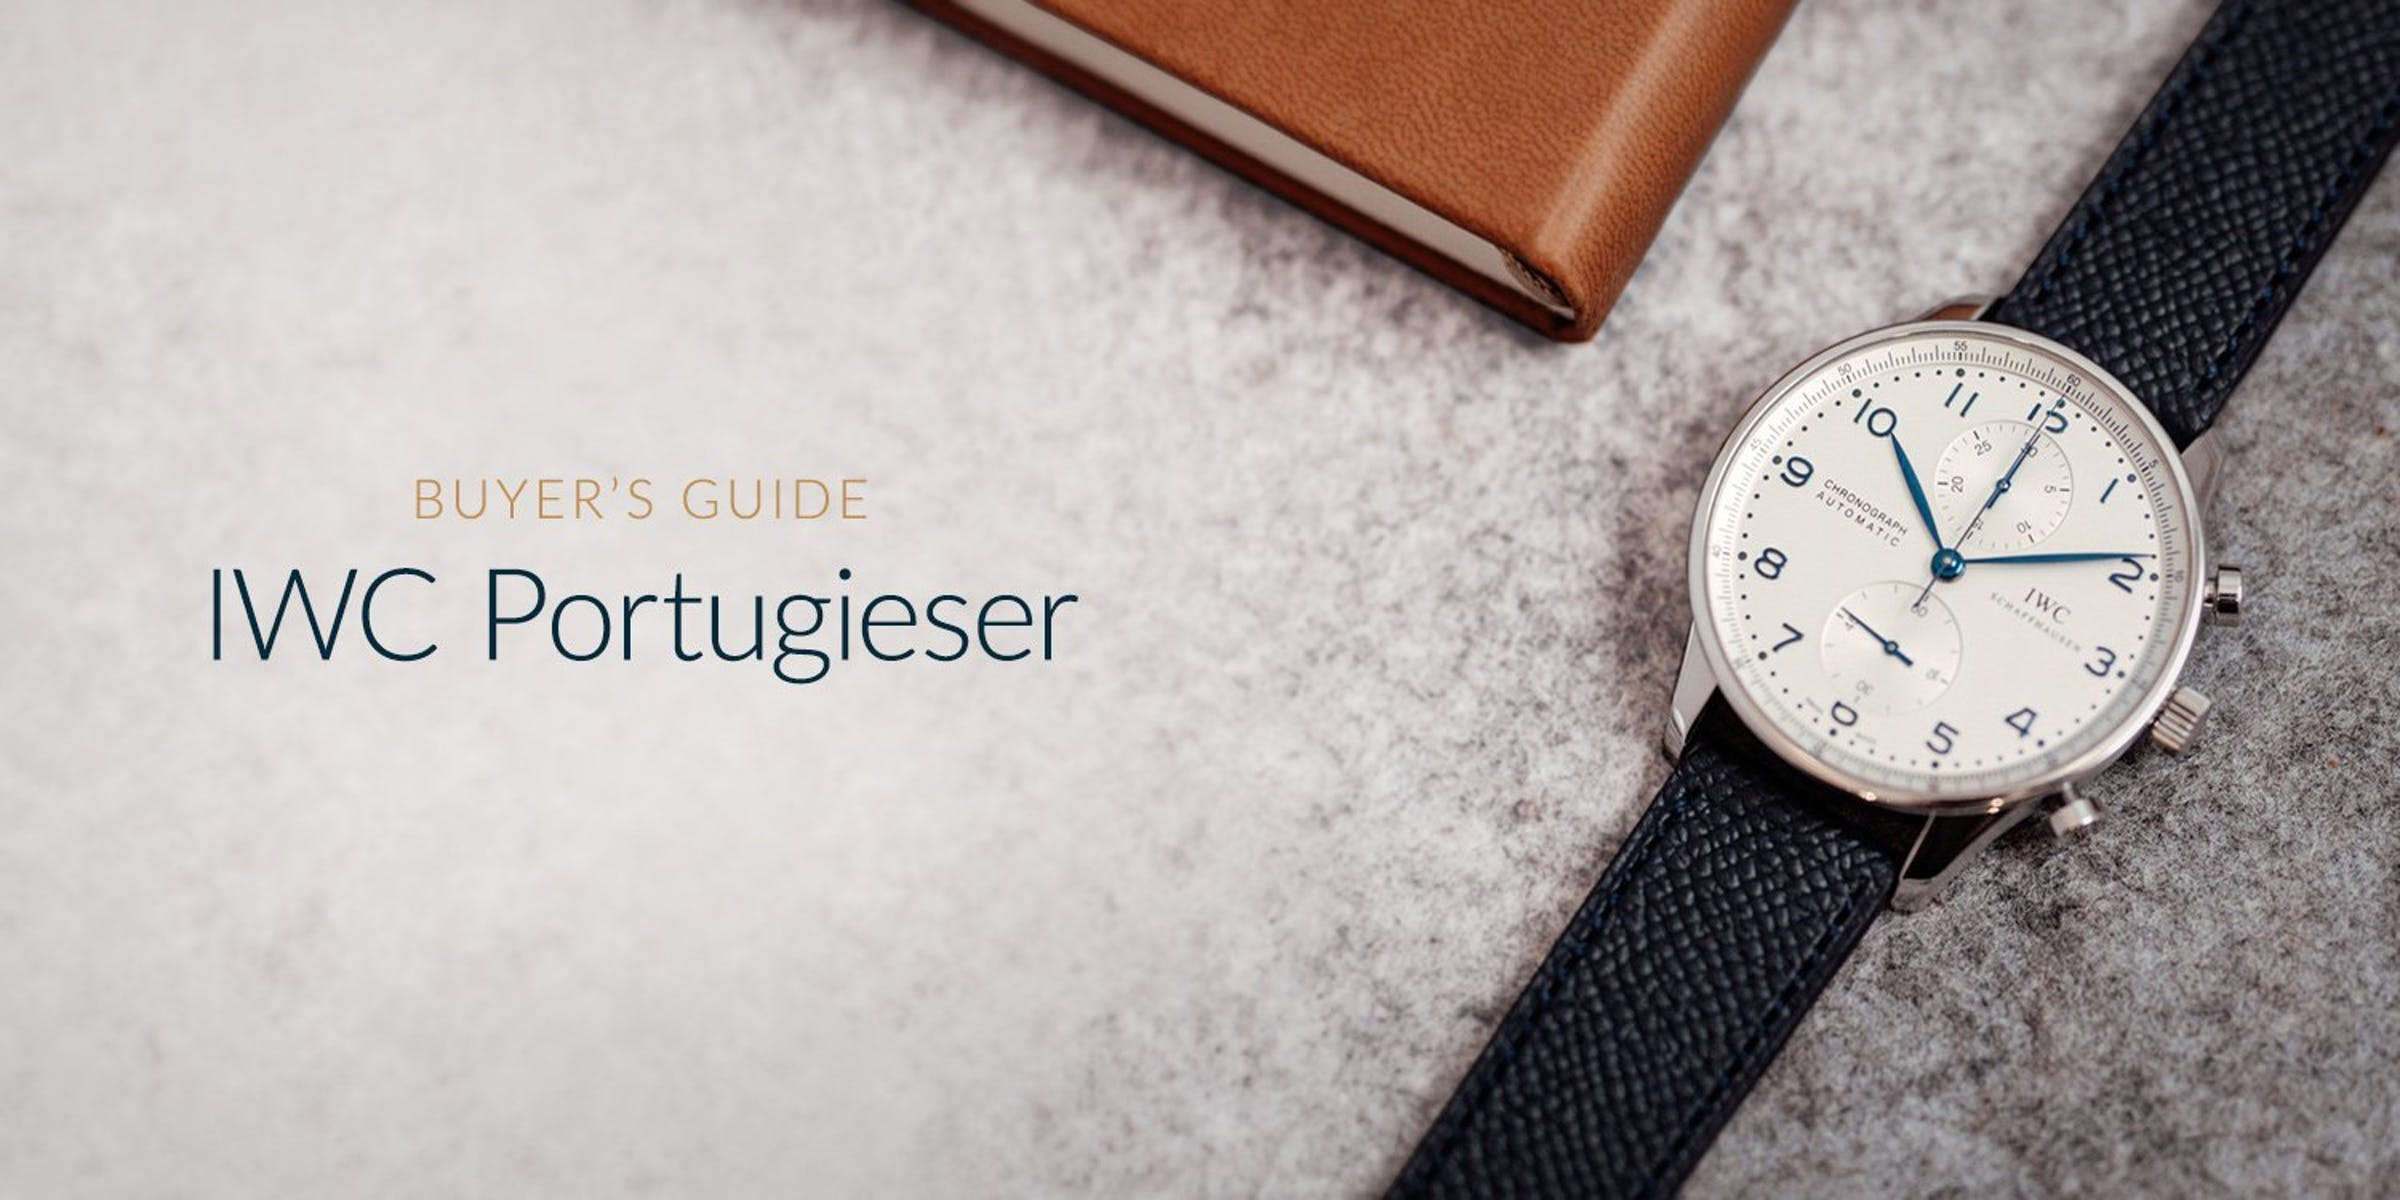 CAM-1483-Buyers-Guide-IWC-Portugieser-2-1-EN